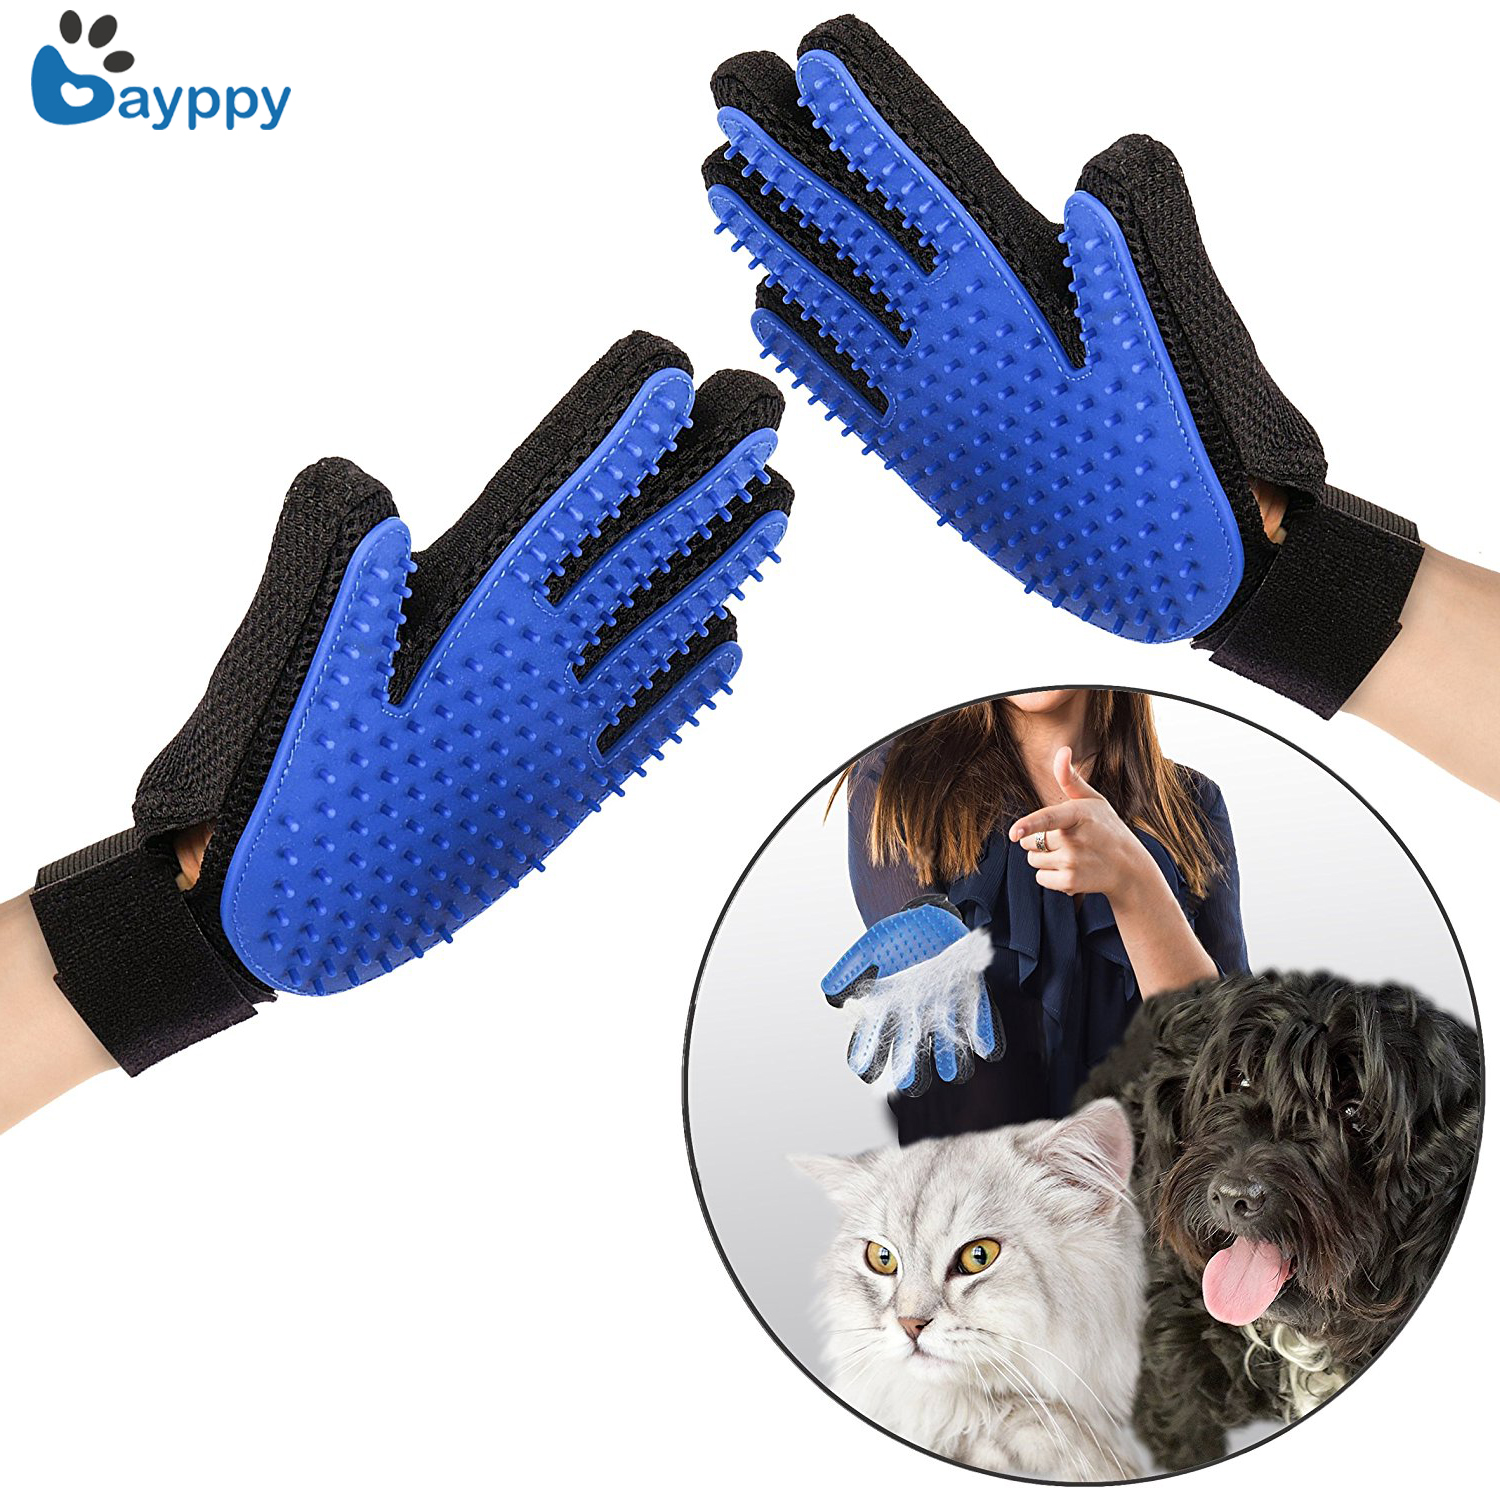 Pet Cat Grooming Glove For Cats Pet Dog Hair Deshedding Brush Comb Glove For Pet Dog Finger Cleaning Massage Glove For Animal